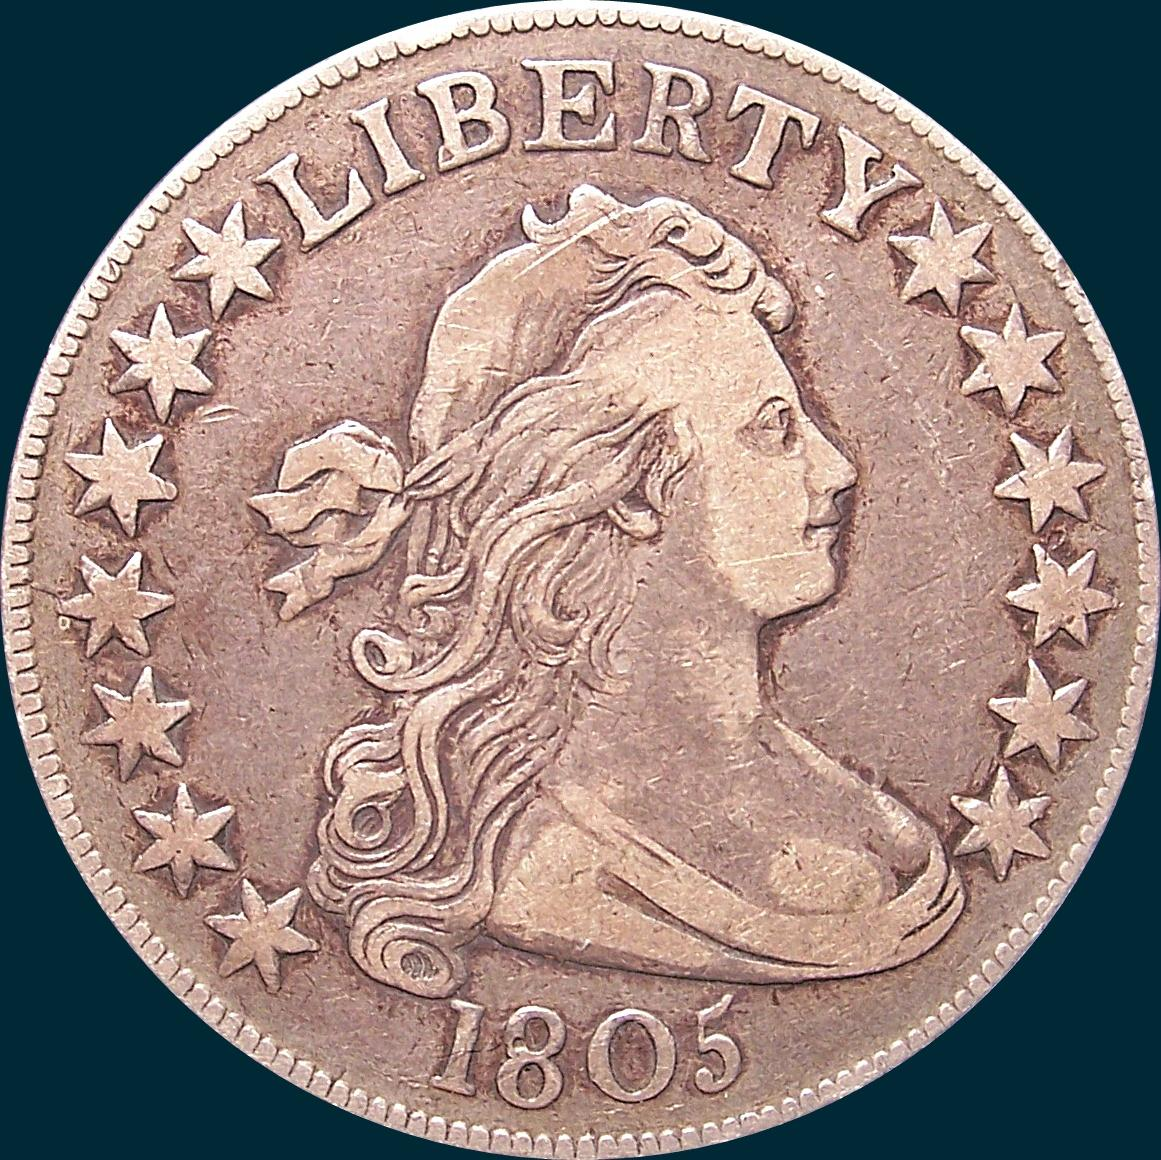 1805, O-112, Draped Bust, Half dollar